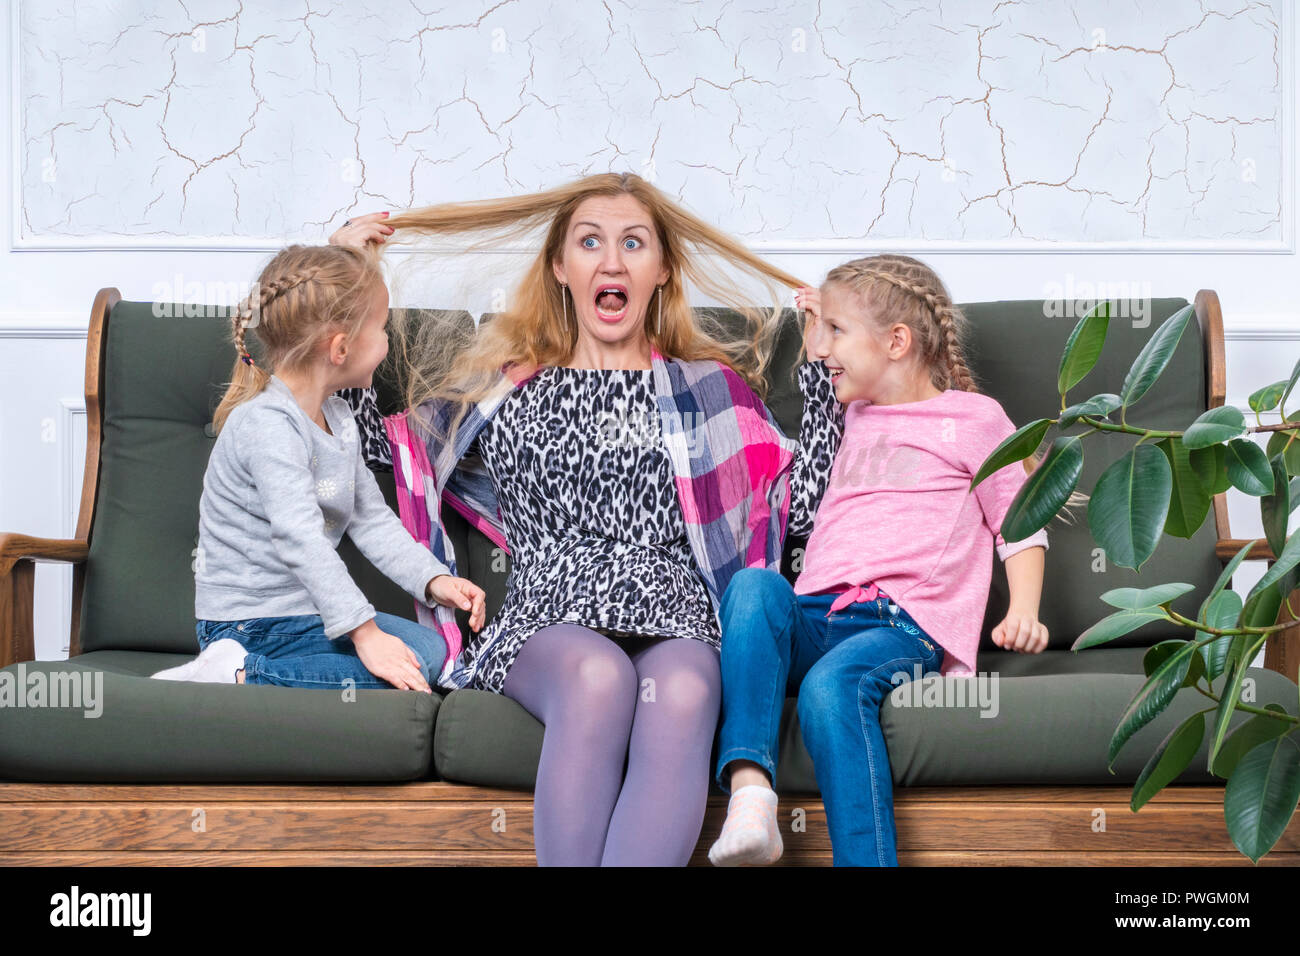 Mother grimacing showing tongue and pulling yourself by the hair amusing their daughters - Stock Image